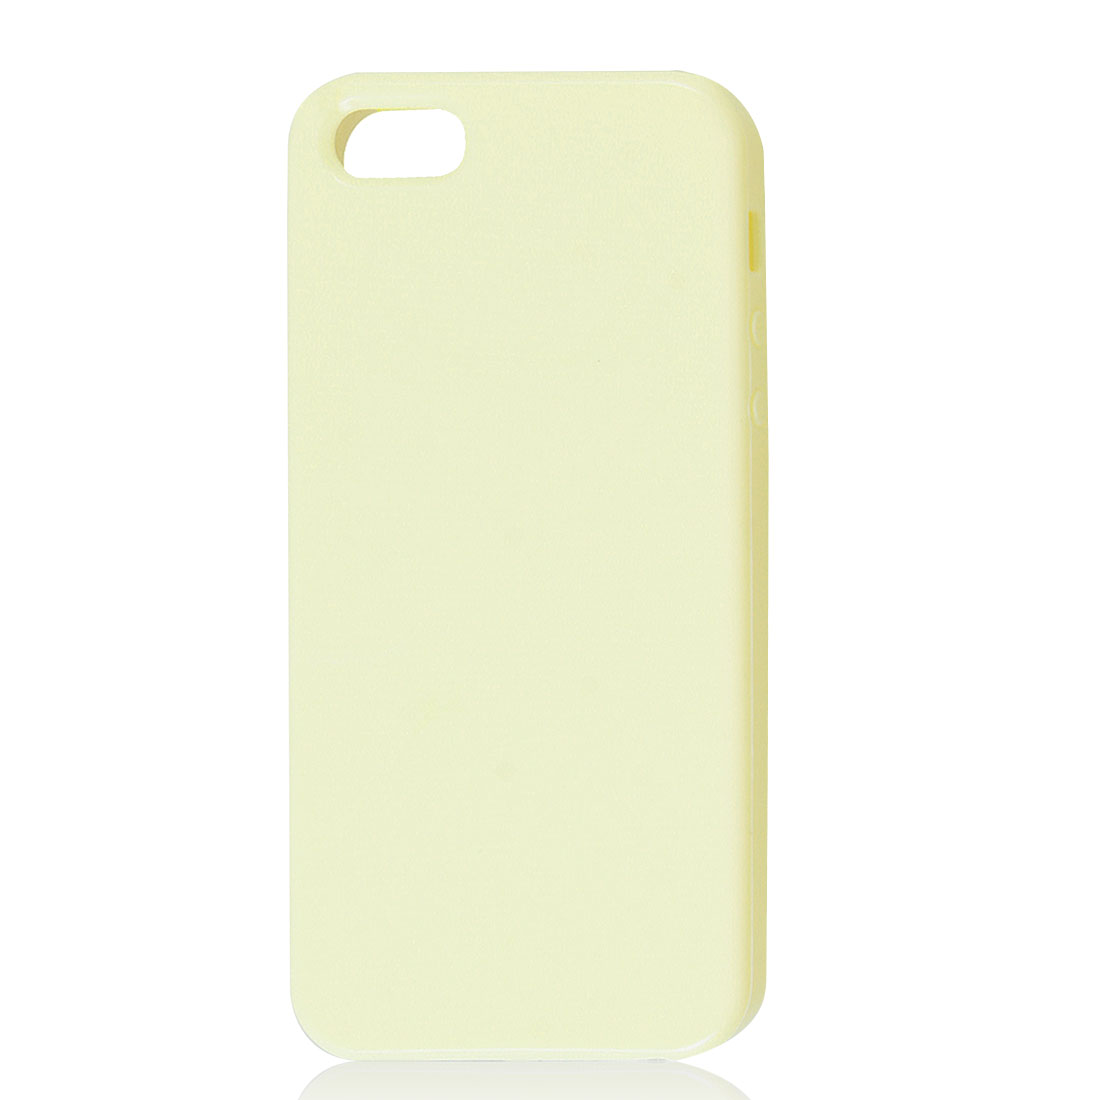 Soft Plastic TPU Protective Case Cover Skin Light Yellow for Apple iPhone 5 5G